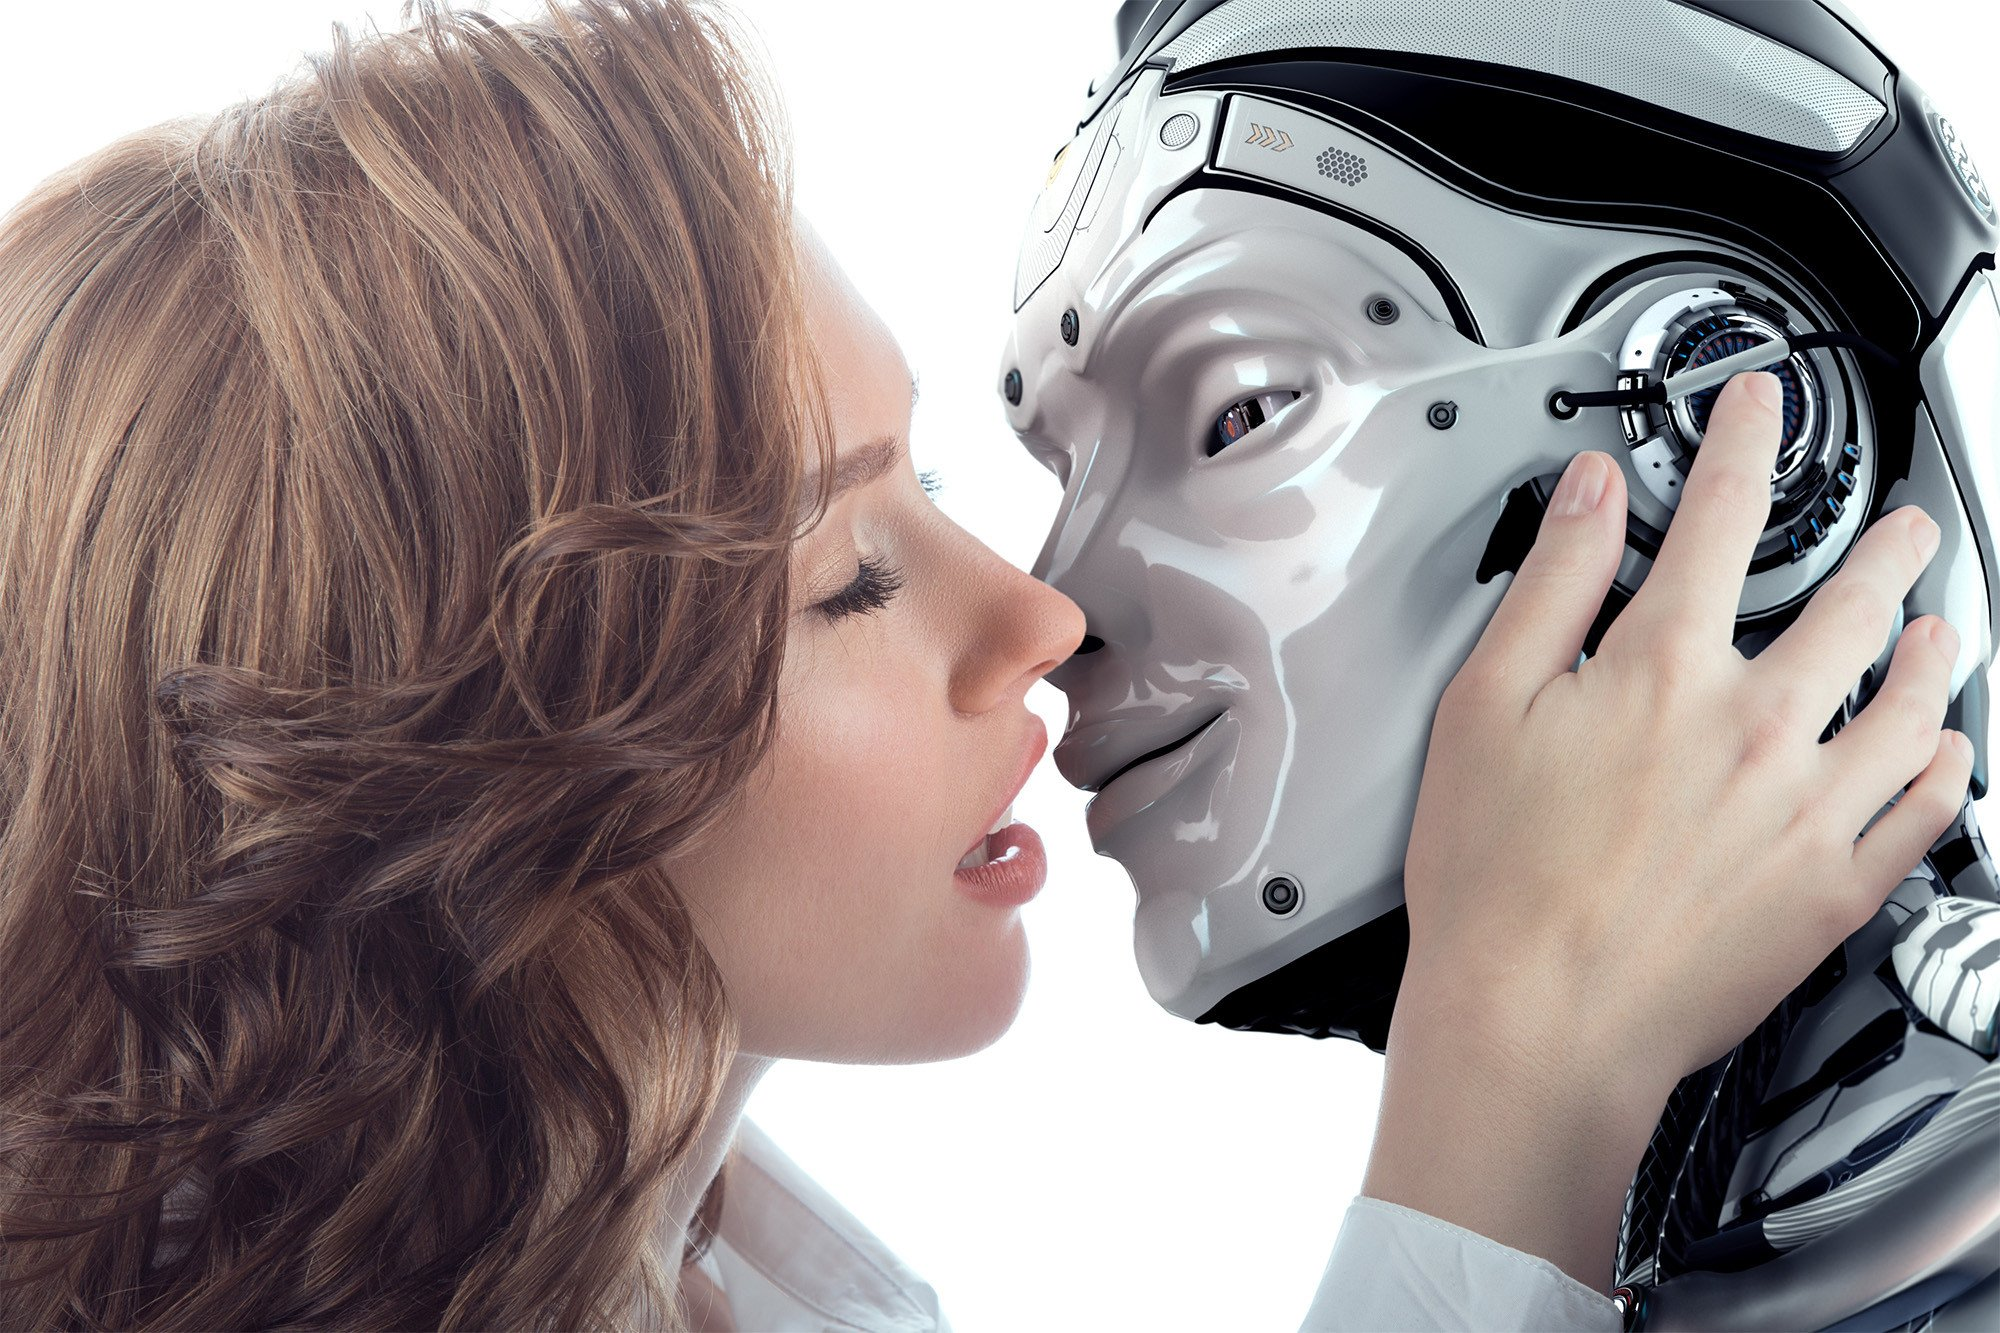 """Dashing' sex robots could make men obsolete"